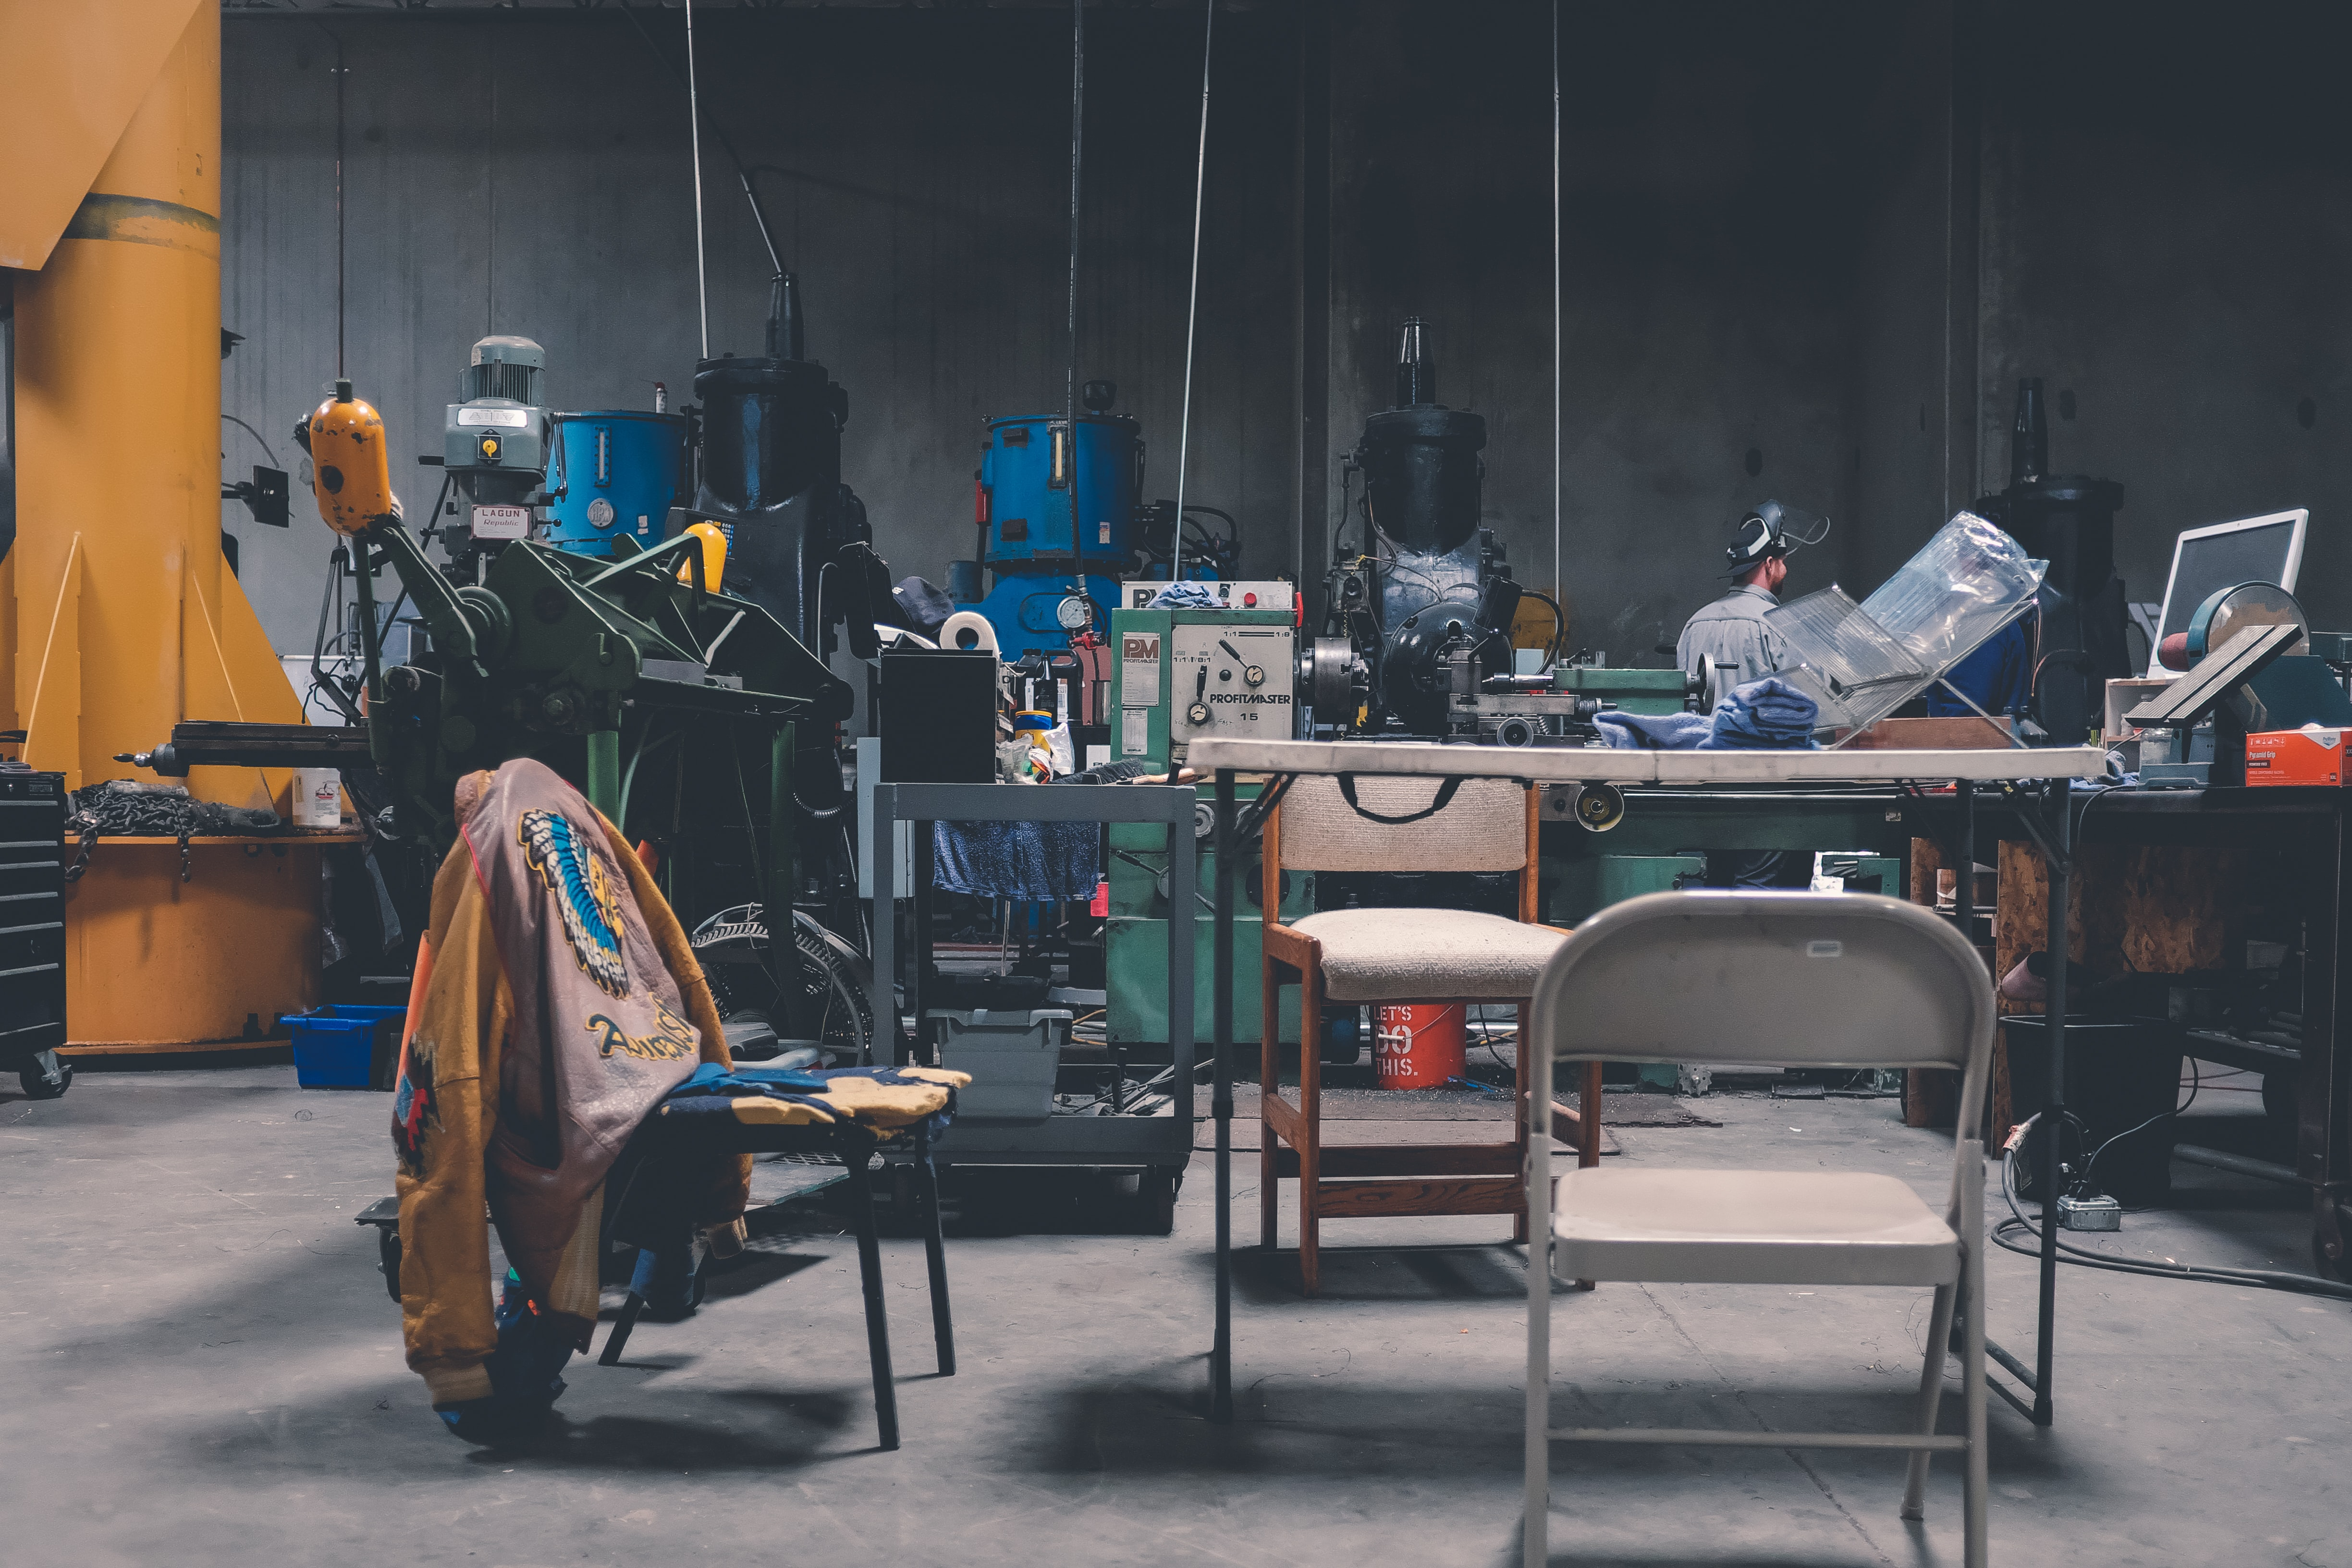 A man working in a messy workshop with a table, chairs and various machines